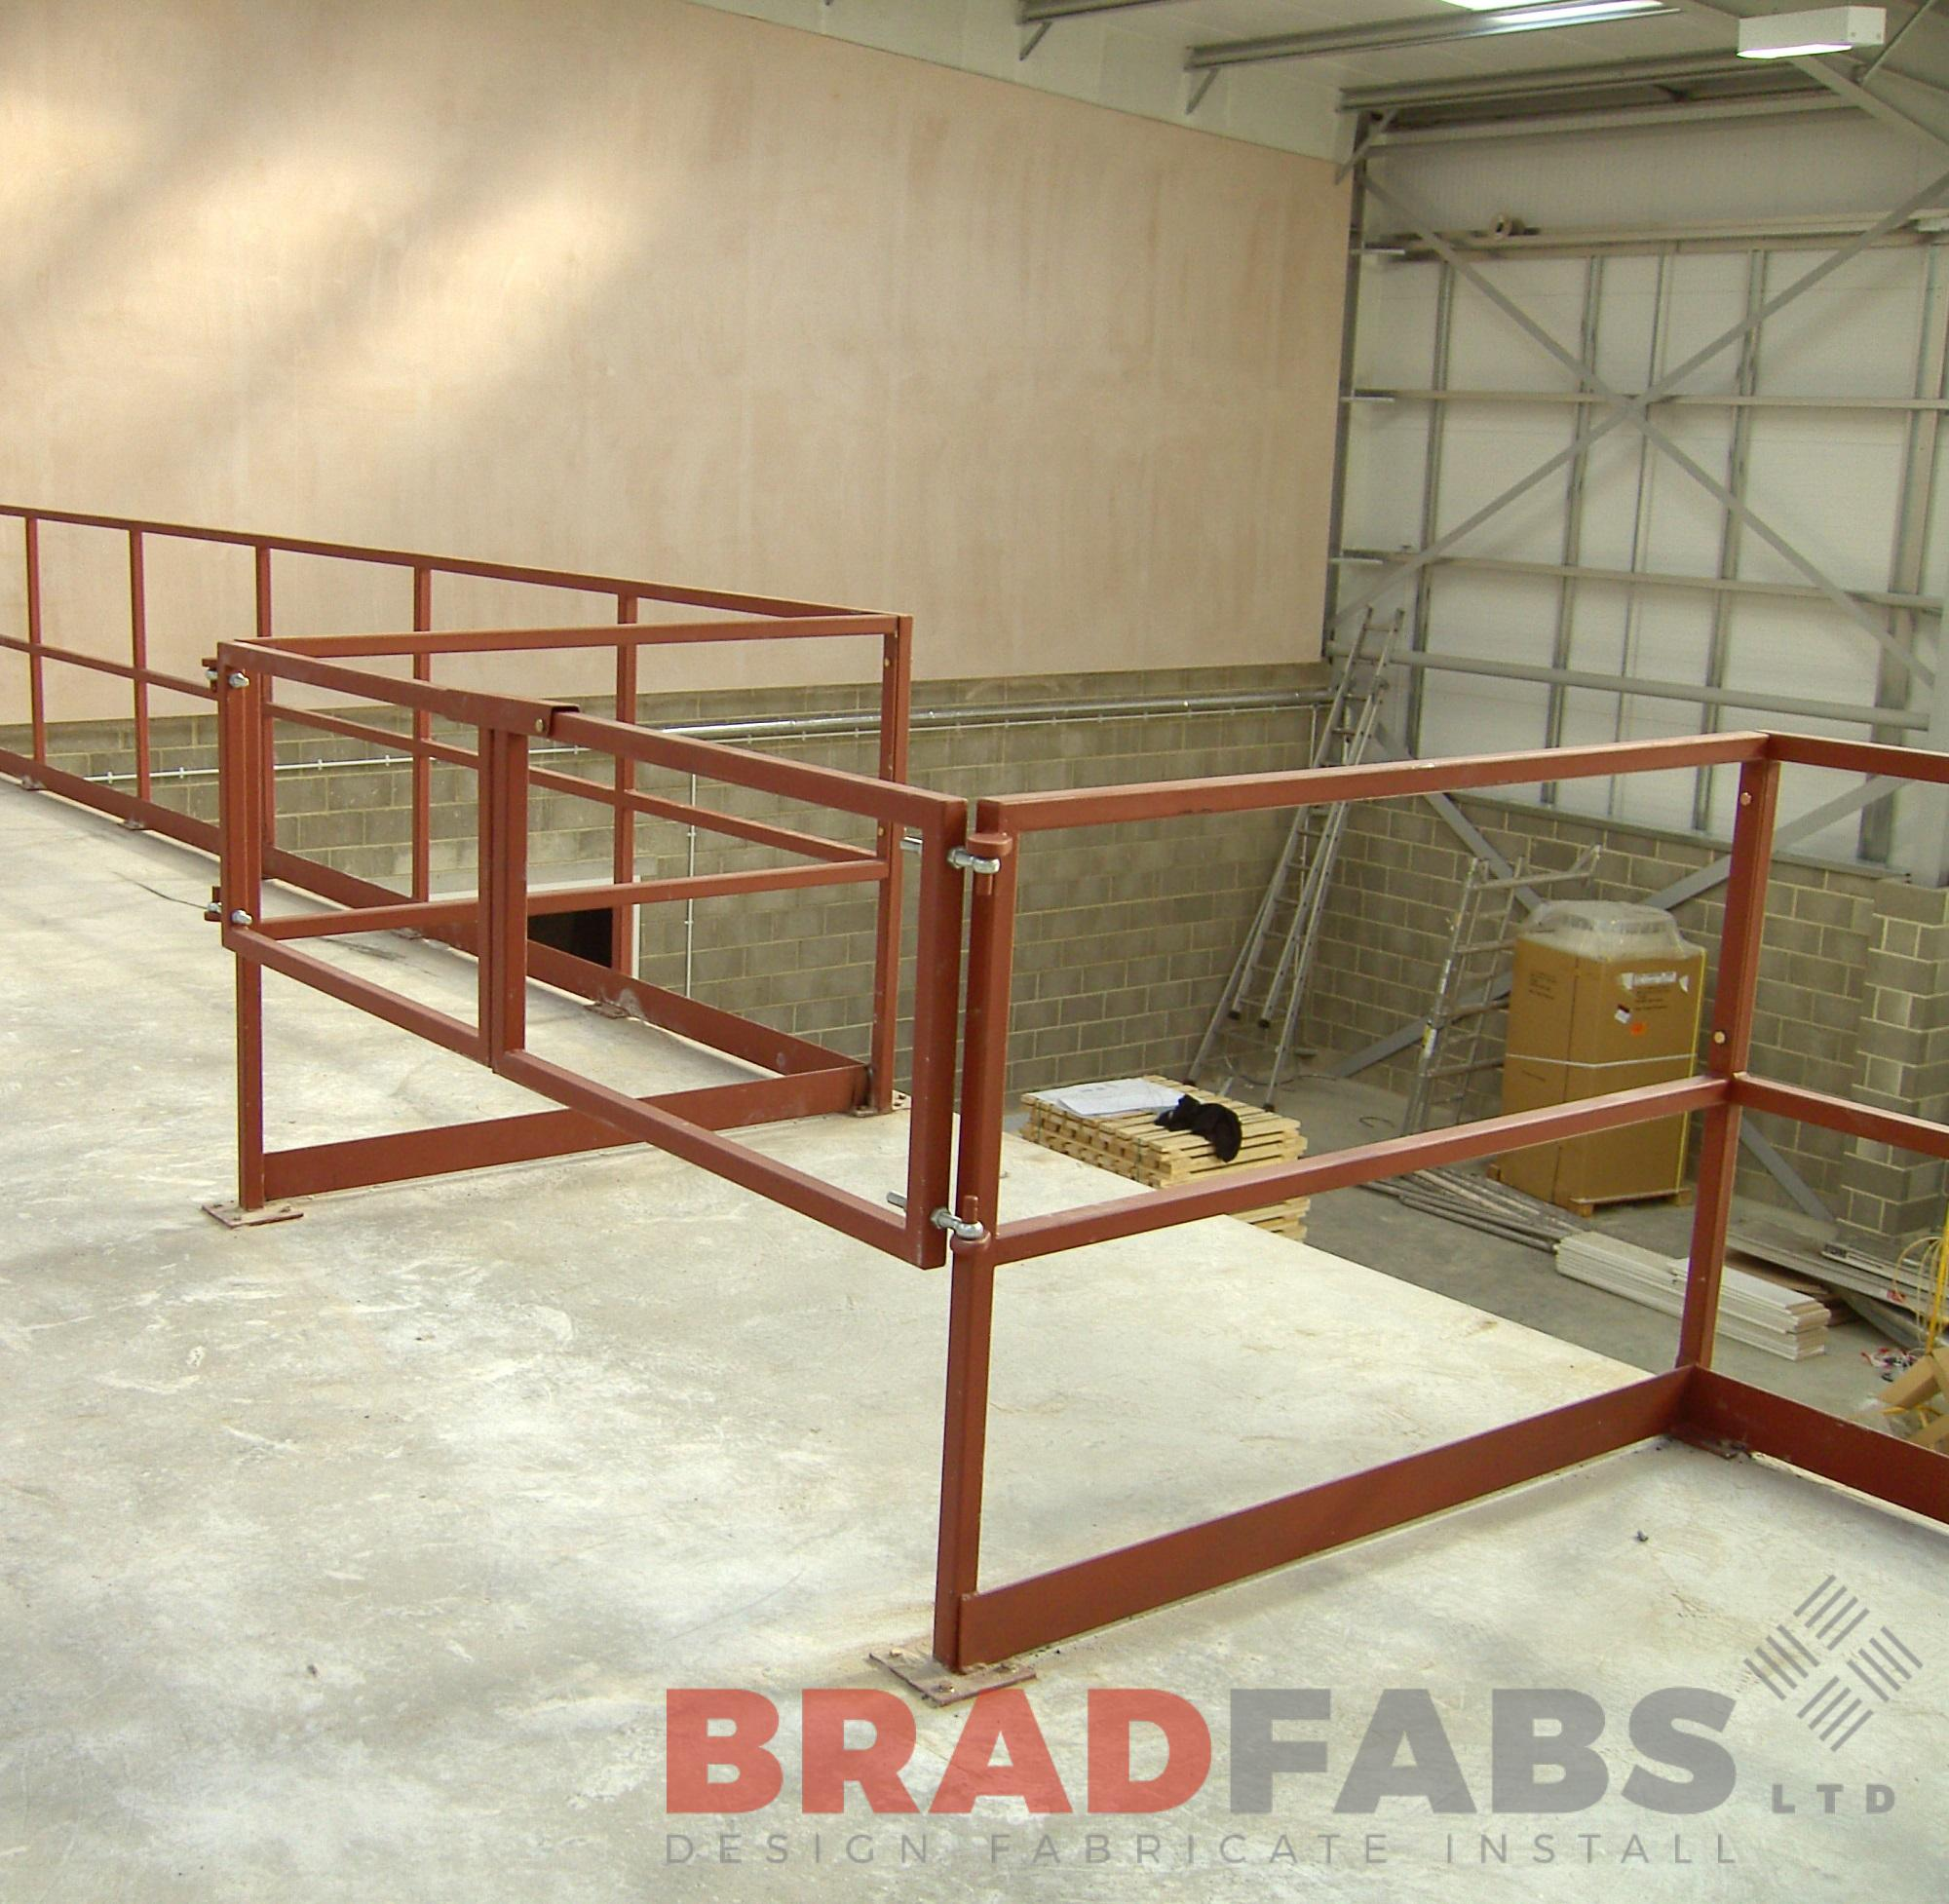 mild steel internal gates powder coated. Designed, supplied and installed by bradfabs